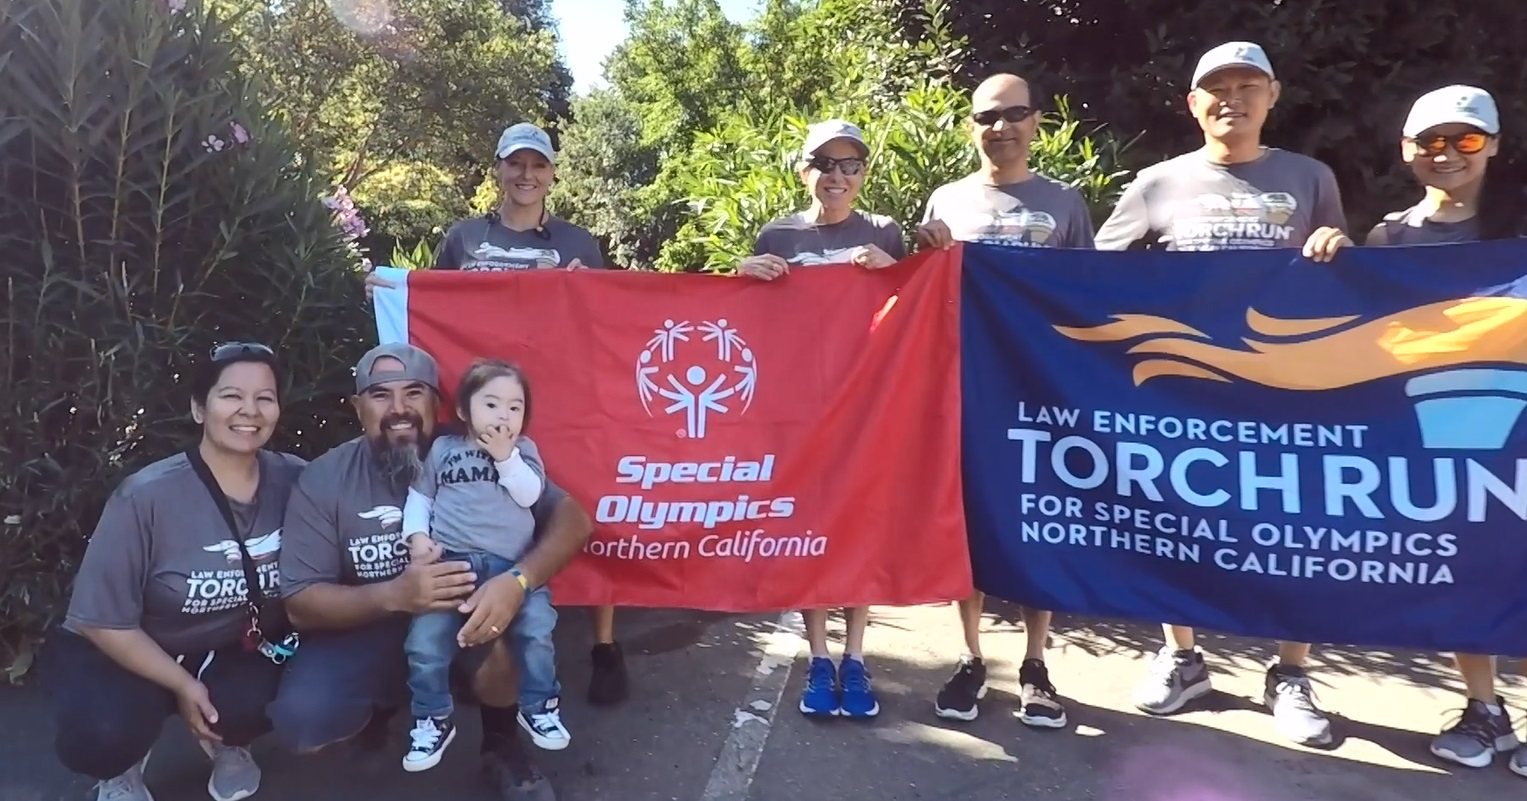 """People hold banners with the words """"Special Olympics"""" and """"Law Enforcement Torch Run."""""""